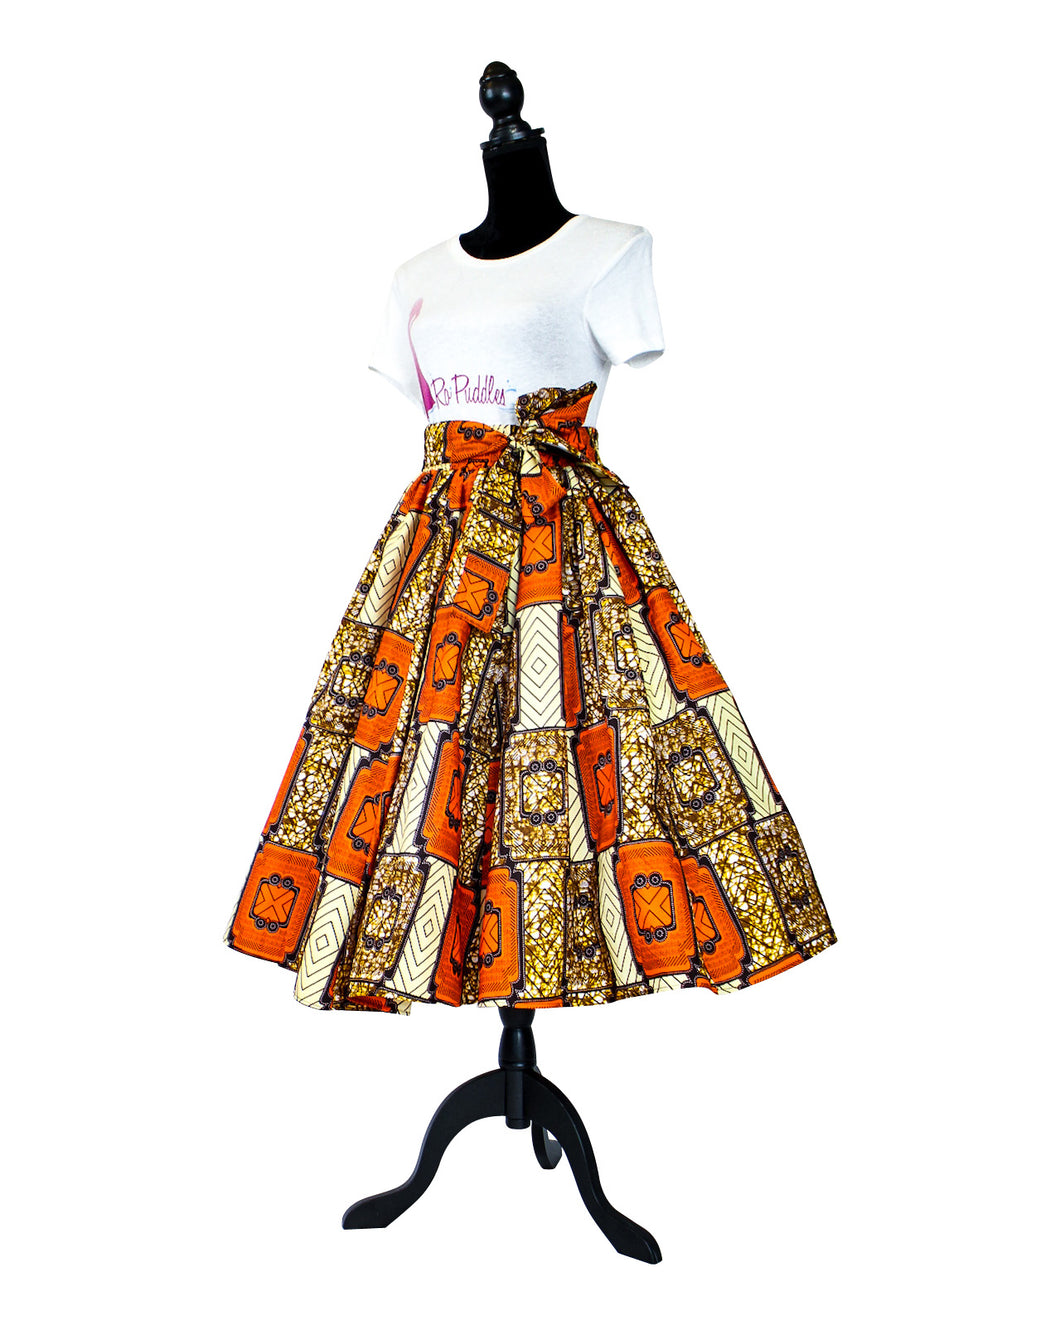 Fashions by RoPuddles Orange and Brown print skirt